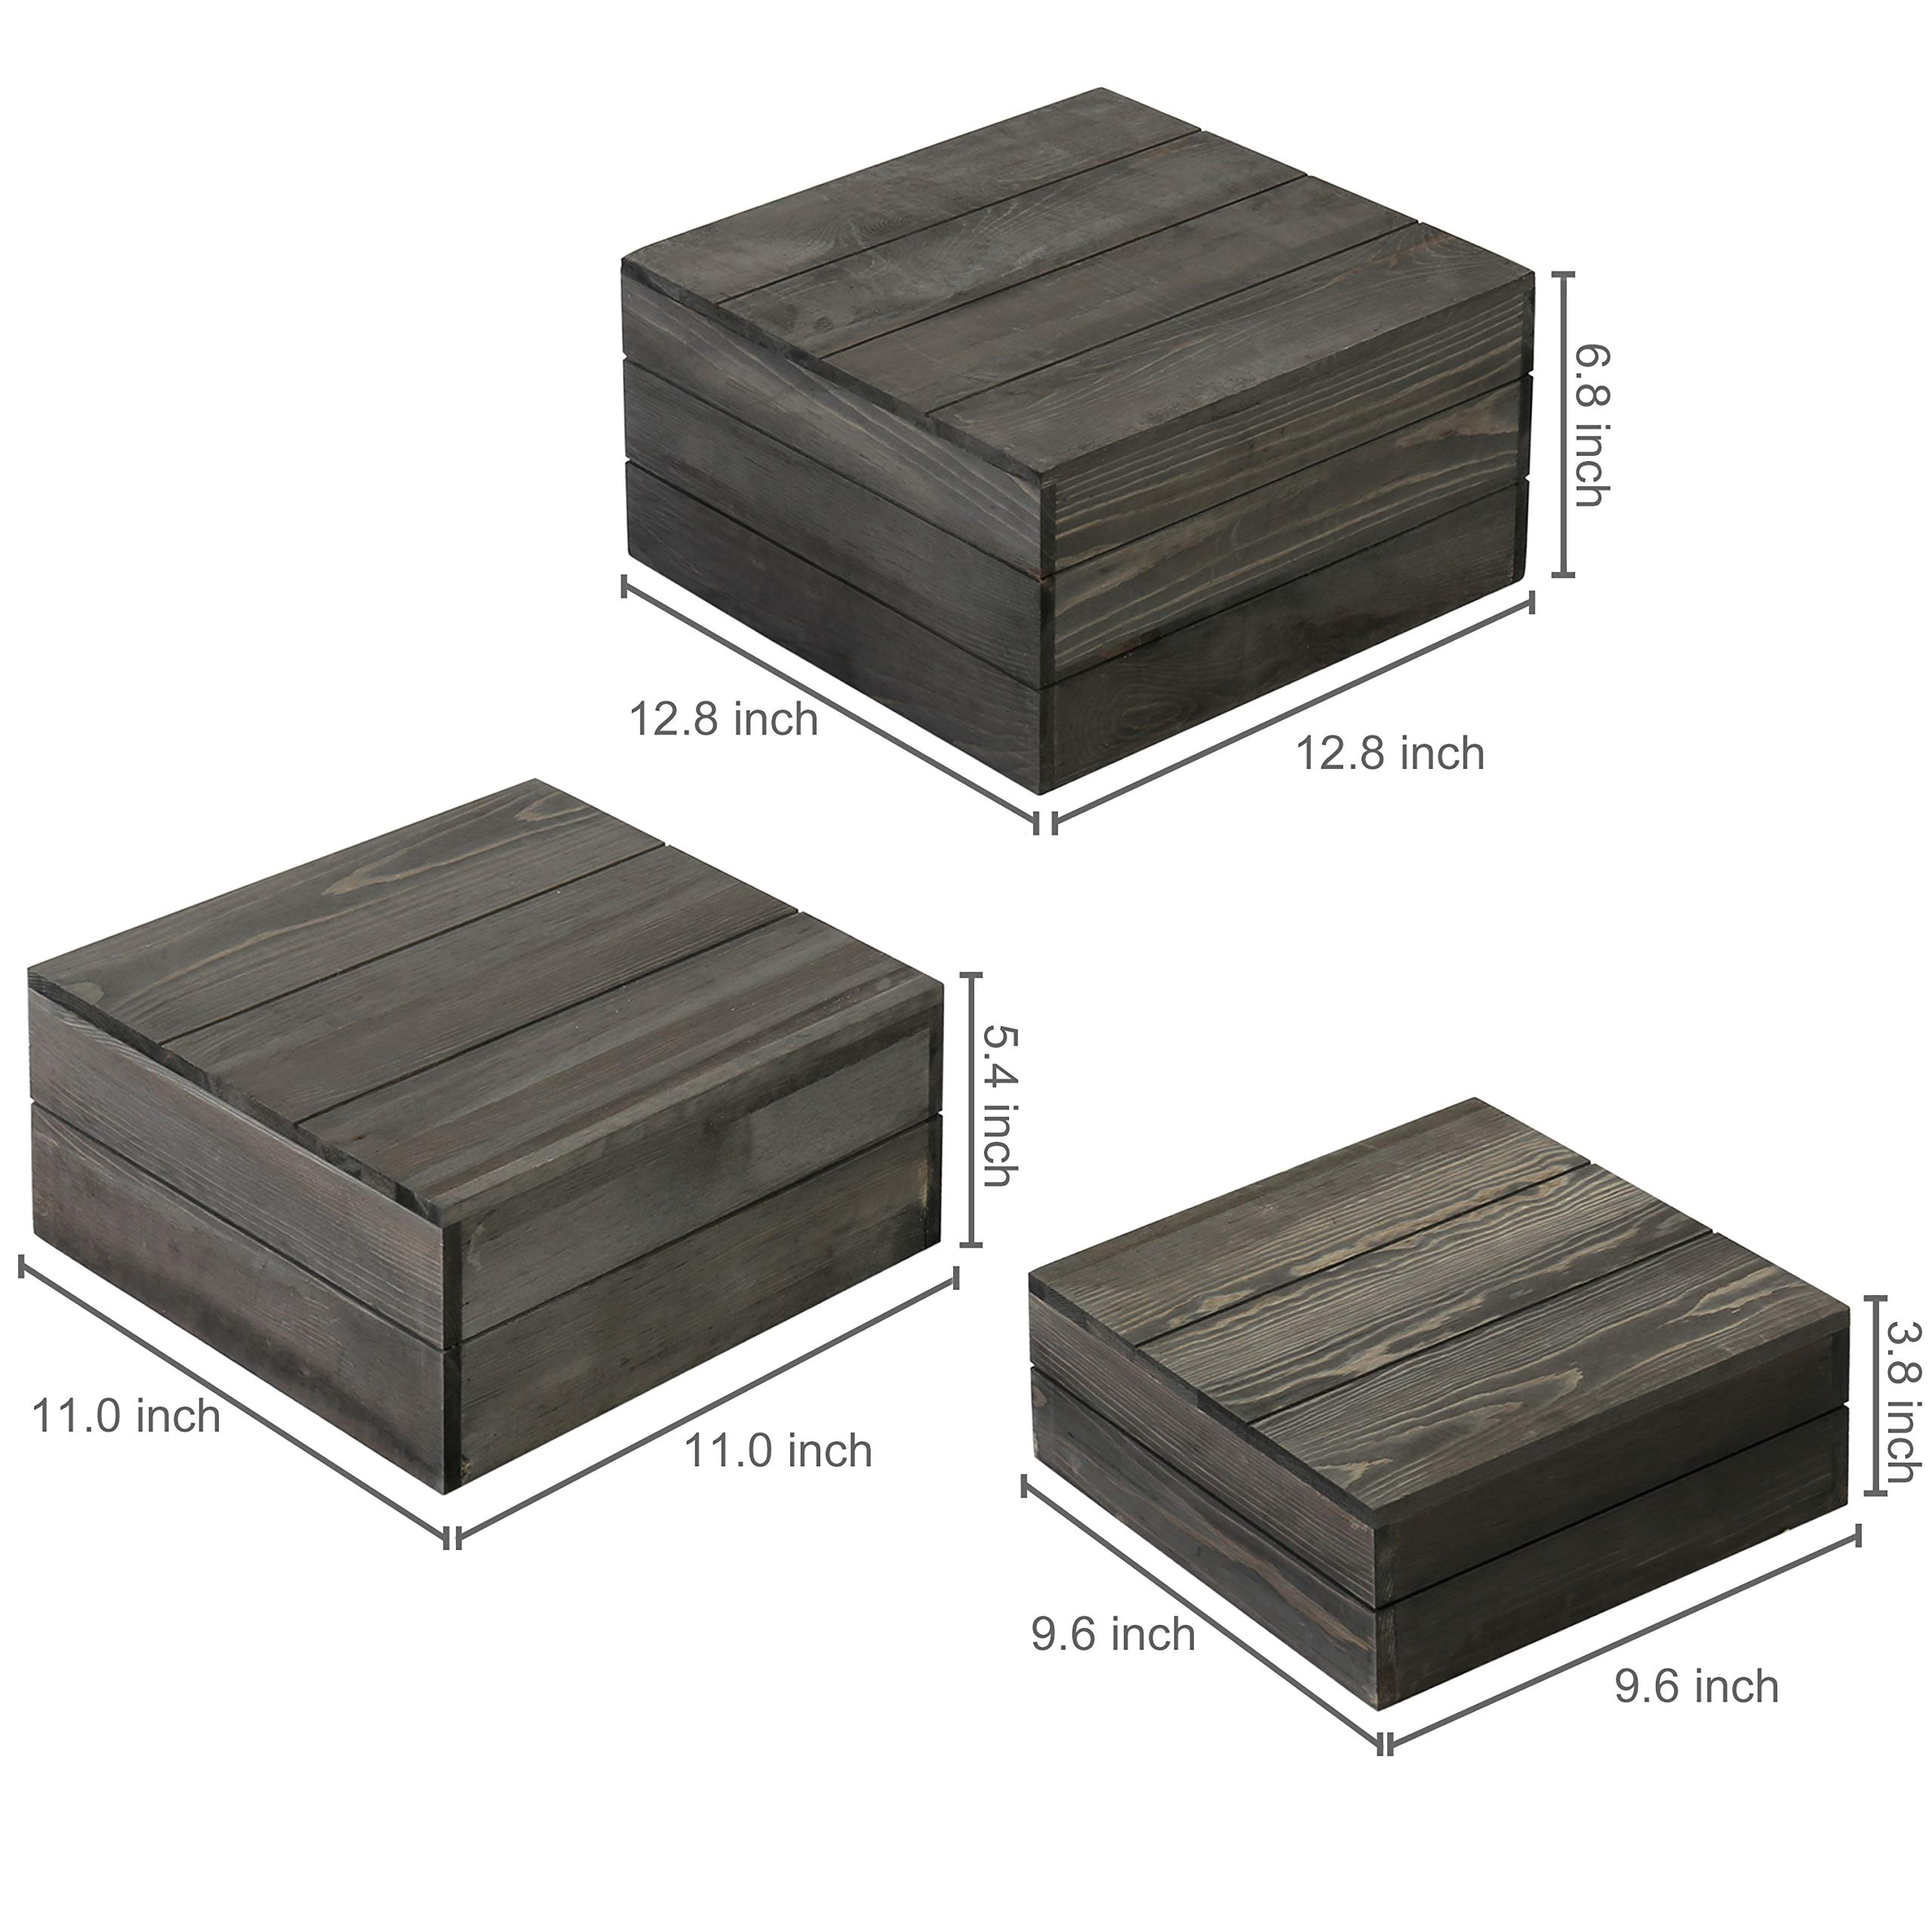 MyGift Rustic Gray Wood Crate Display Risers, Set of 3 by MyGift (Image #3)